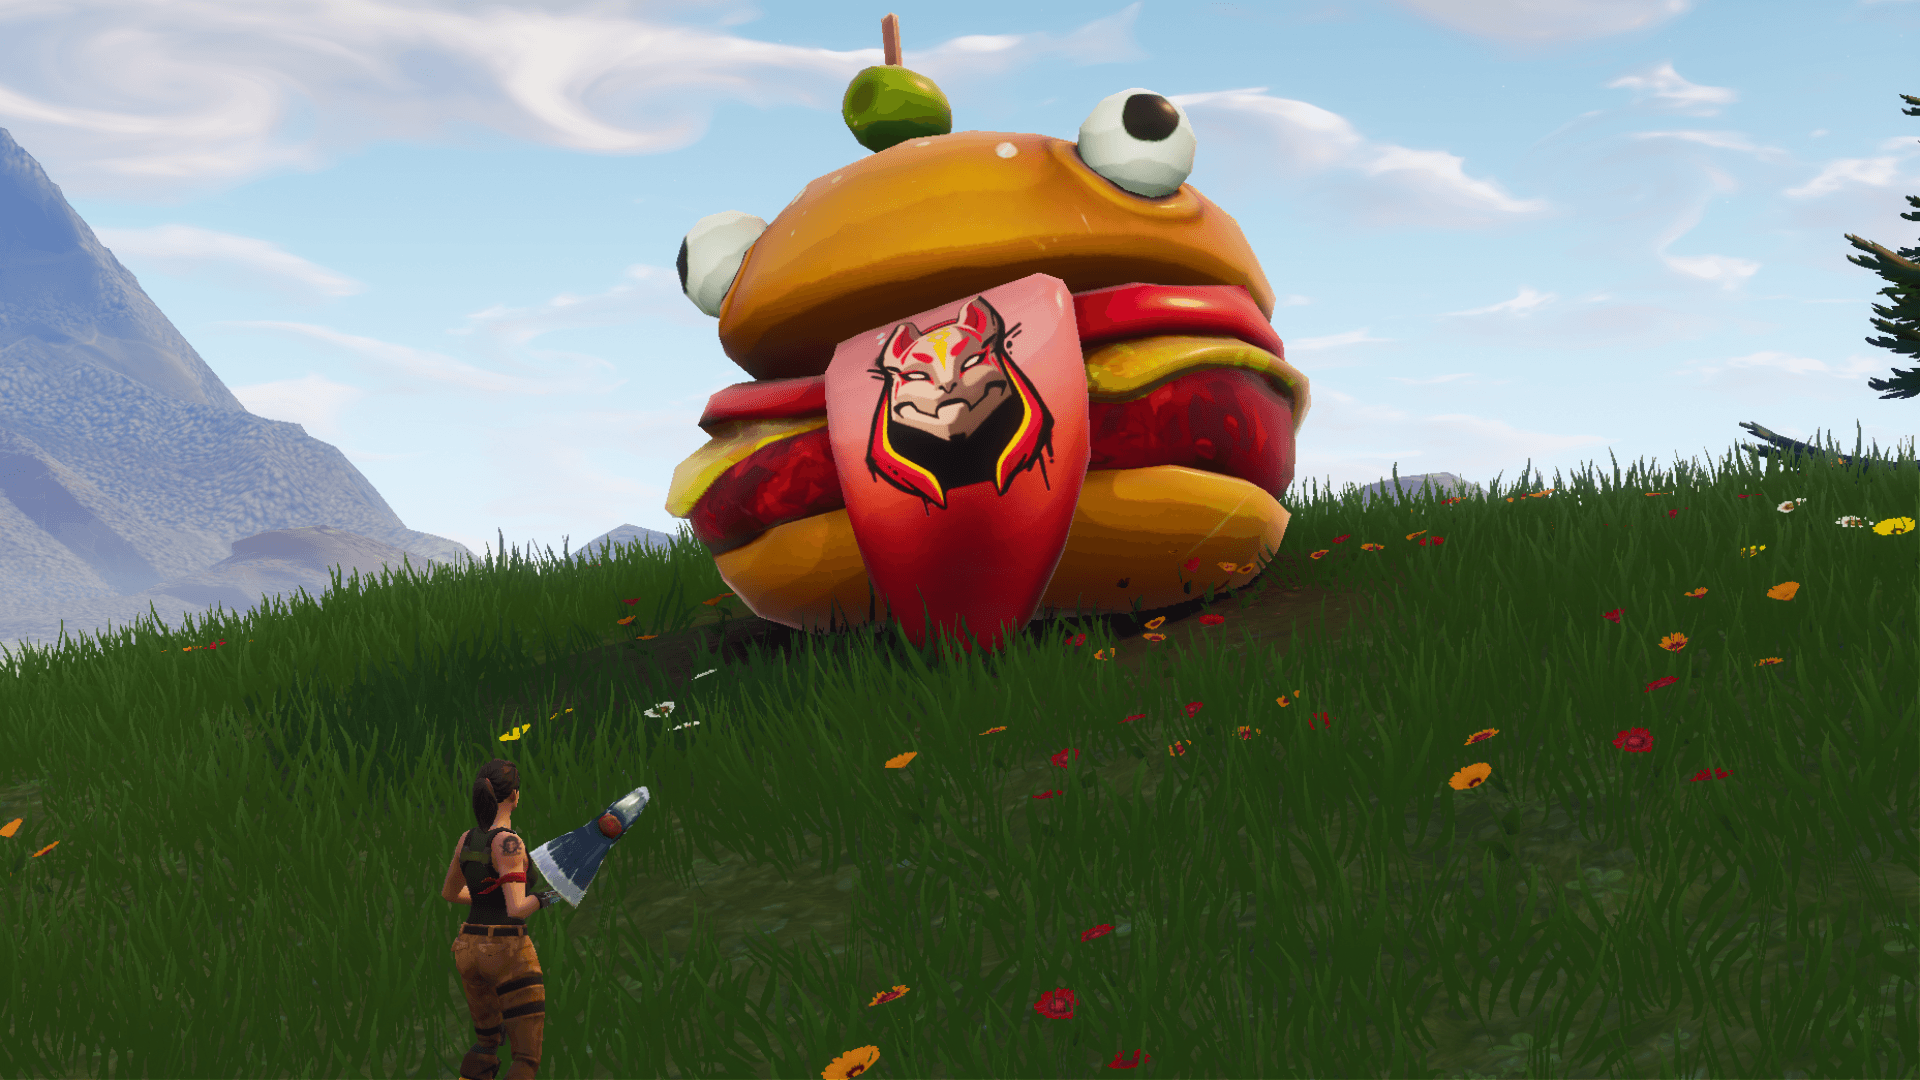 1920x1080 Durr Burger Skin and More Leaked from Fortnite V5.2 Files